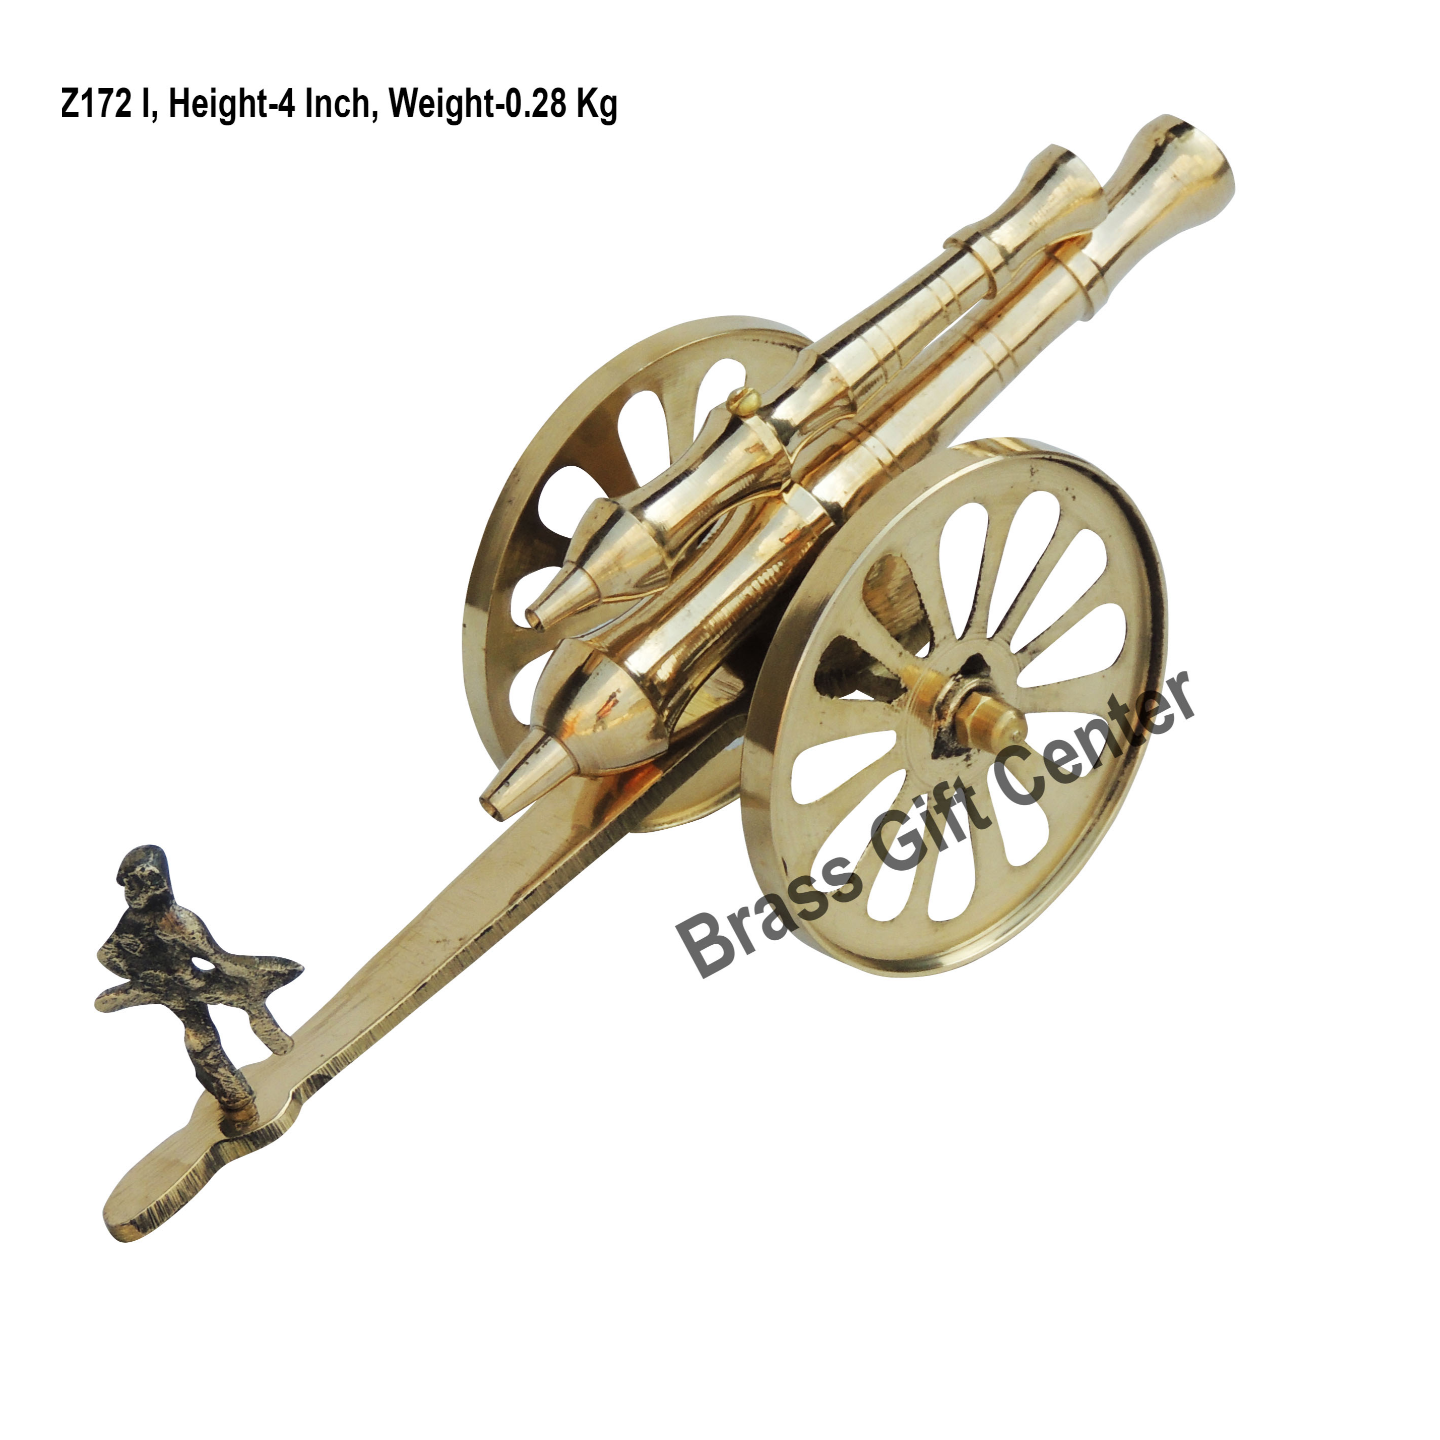 Brass Small Toop Cannon No 10 - 984 inch  Z172 I